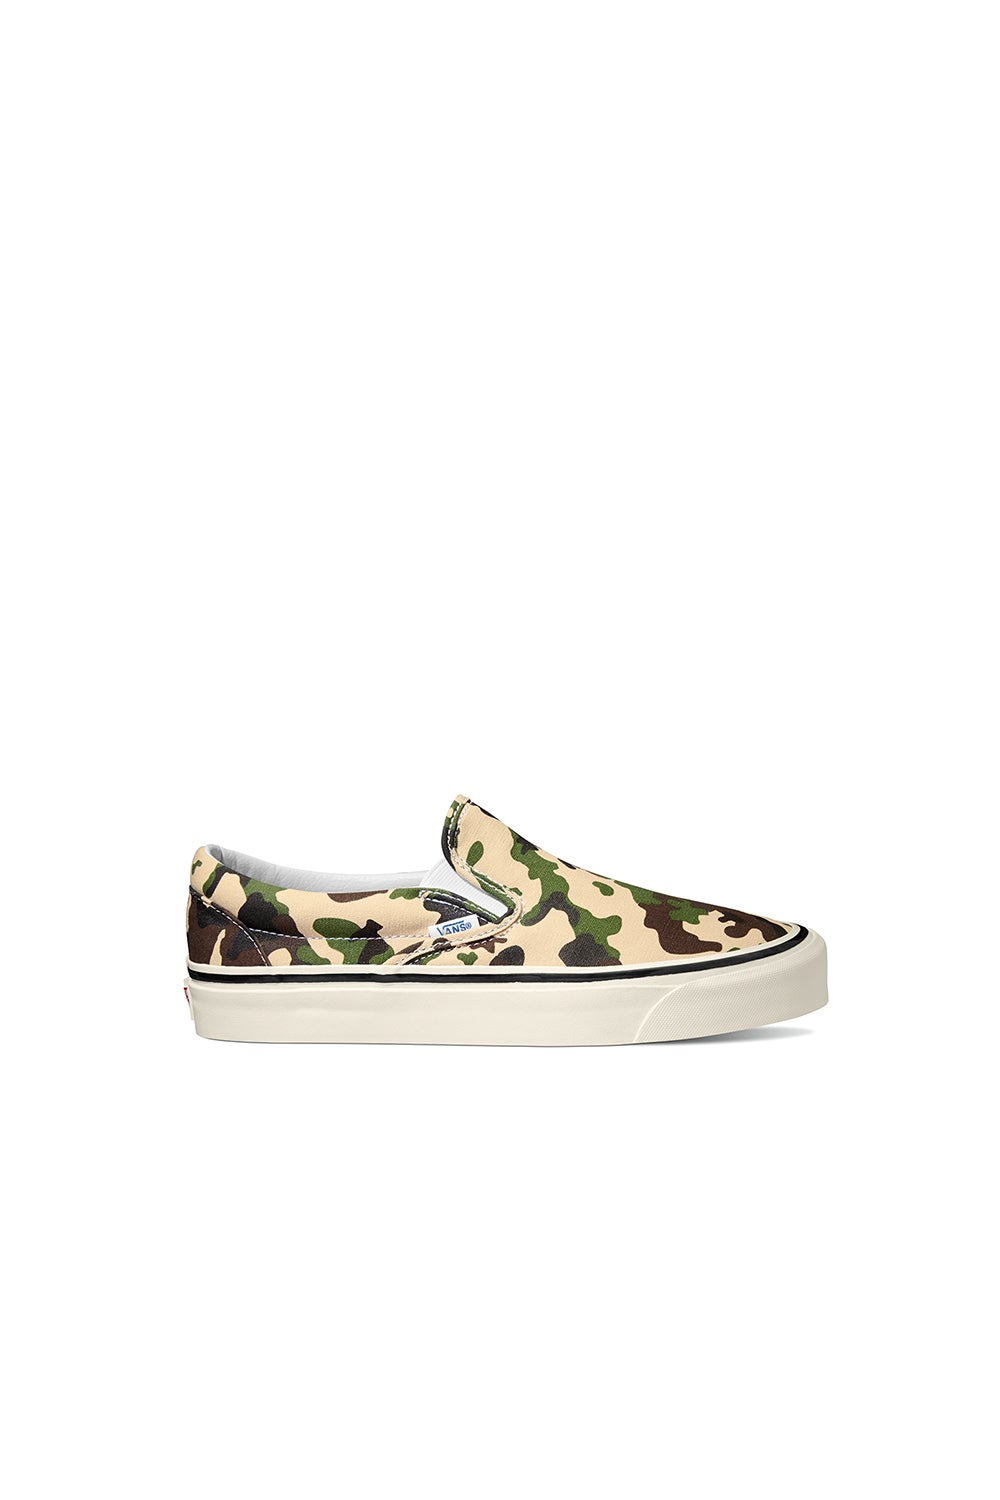 Vans Classic Slip-On 98 DX (Anaheim Factory) OG Camo